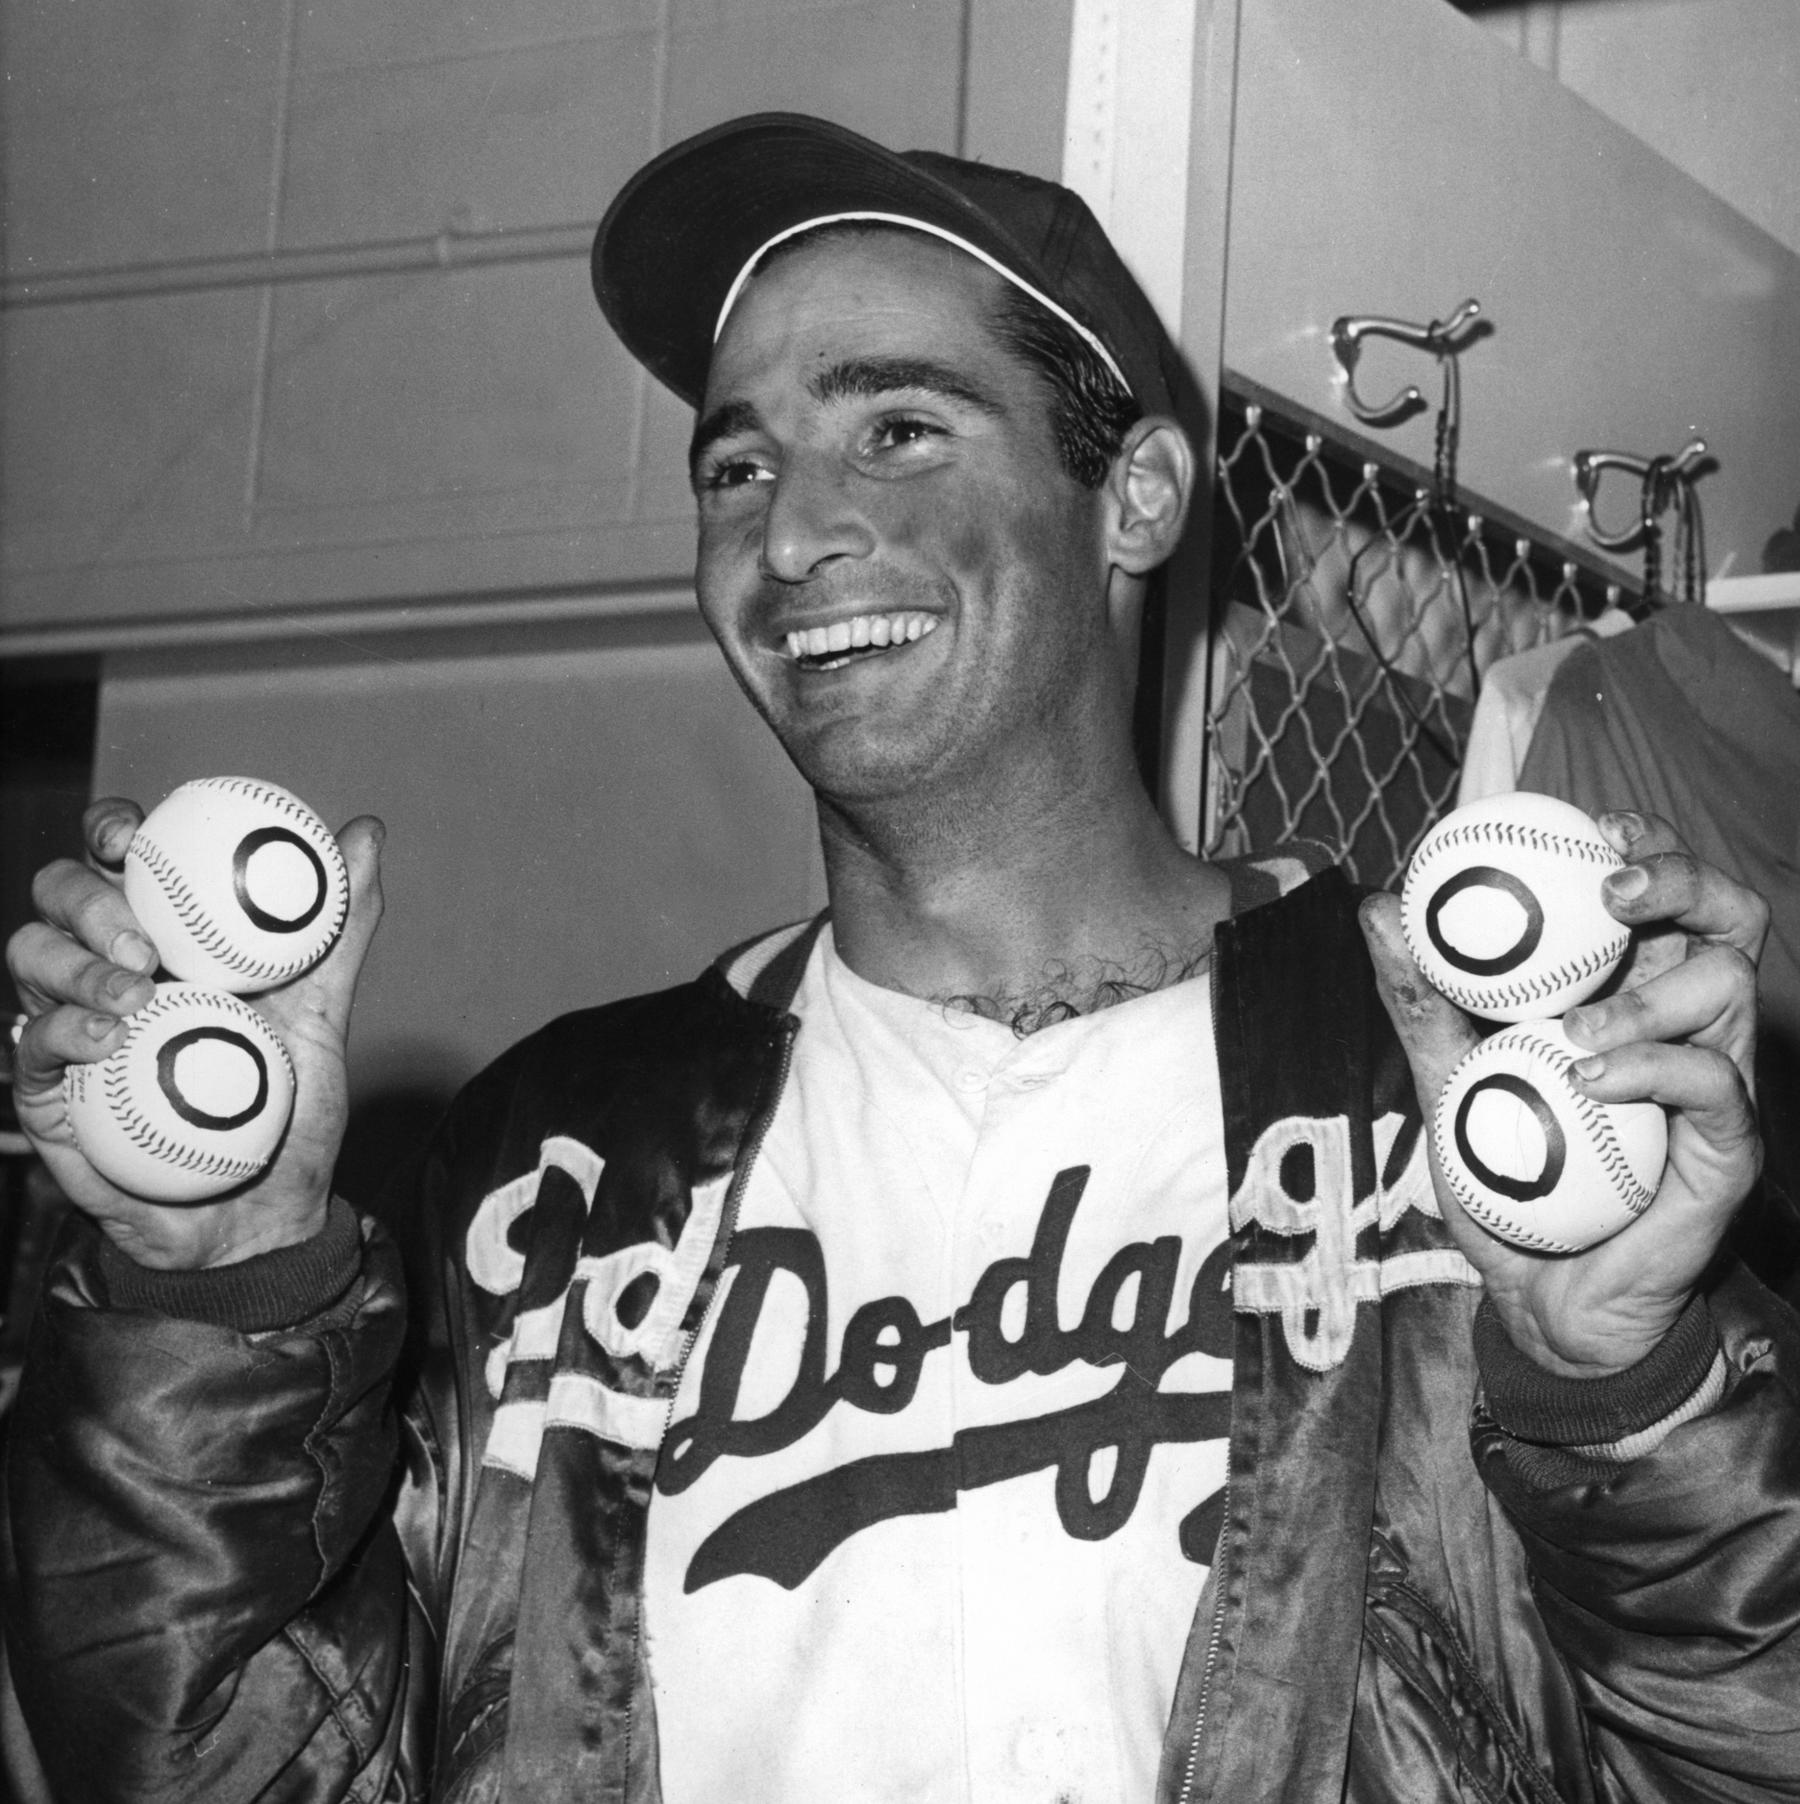 Sandy Koufax holding four balls to signify his fourth career no-hitter. He achieved this feat on September 9th, 1965. BL-305.65 (National Baseball Hall of Fame Library)